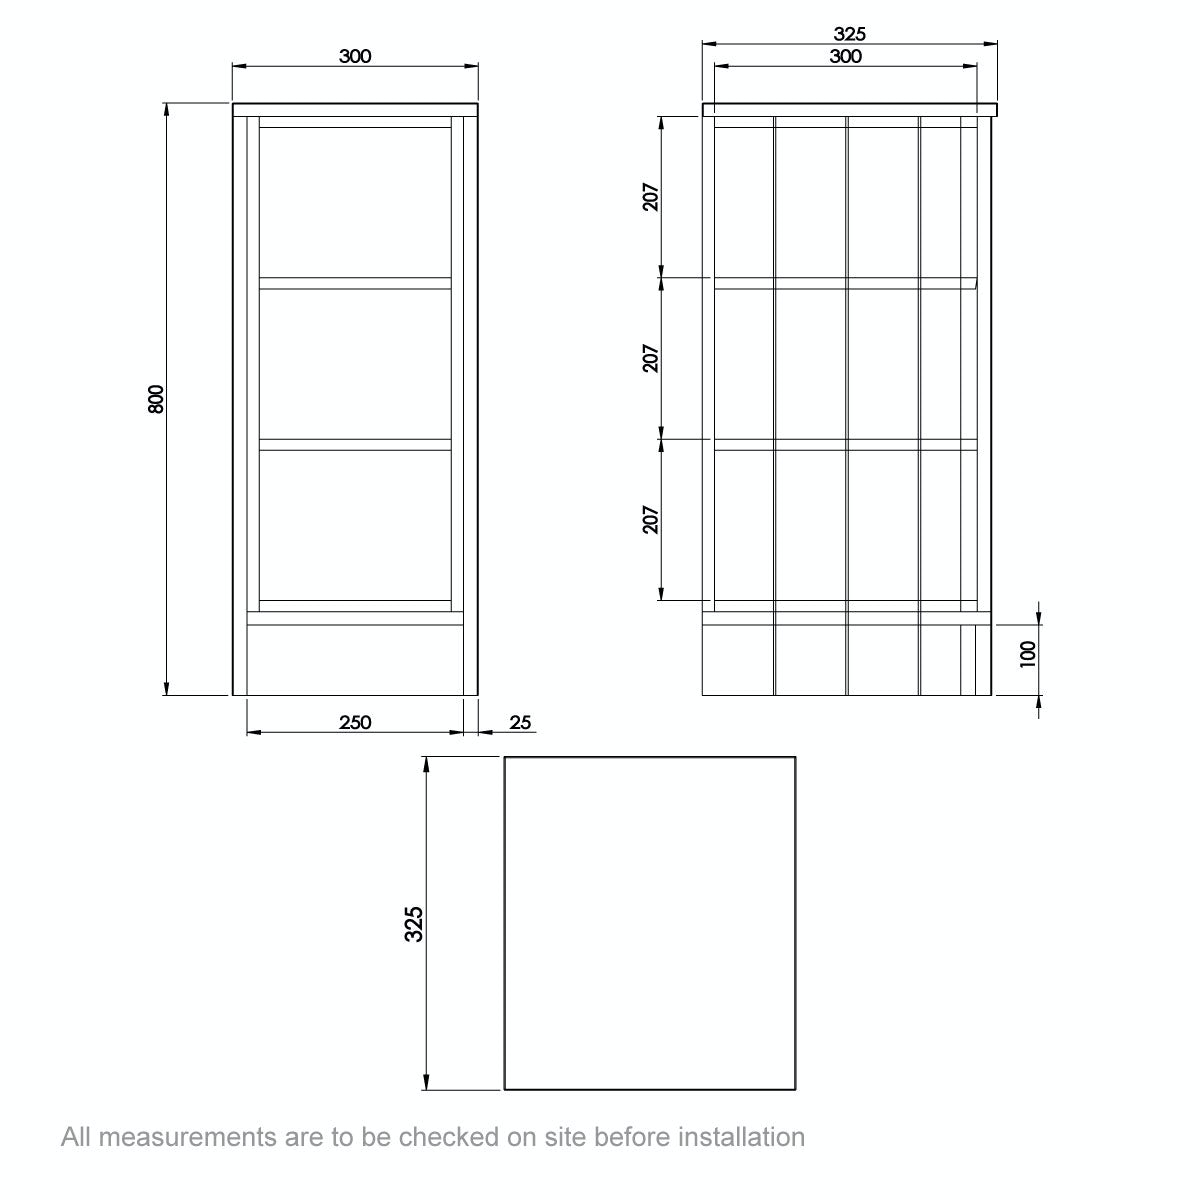 Dimensions for The Bath Co. Dulwich stone grey open storage unit